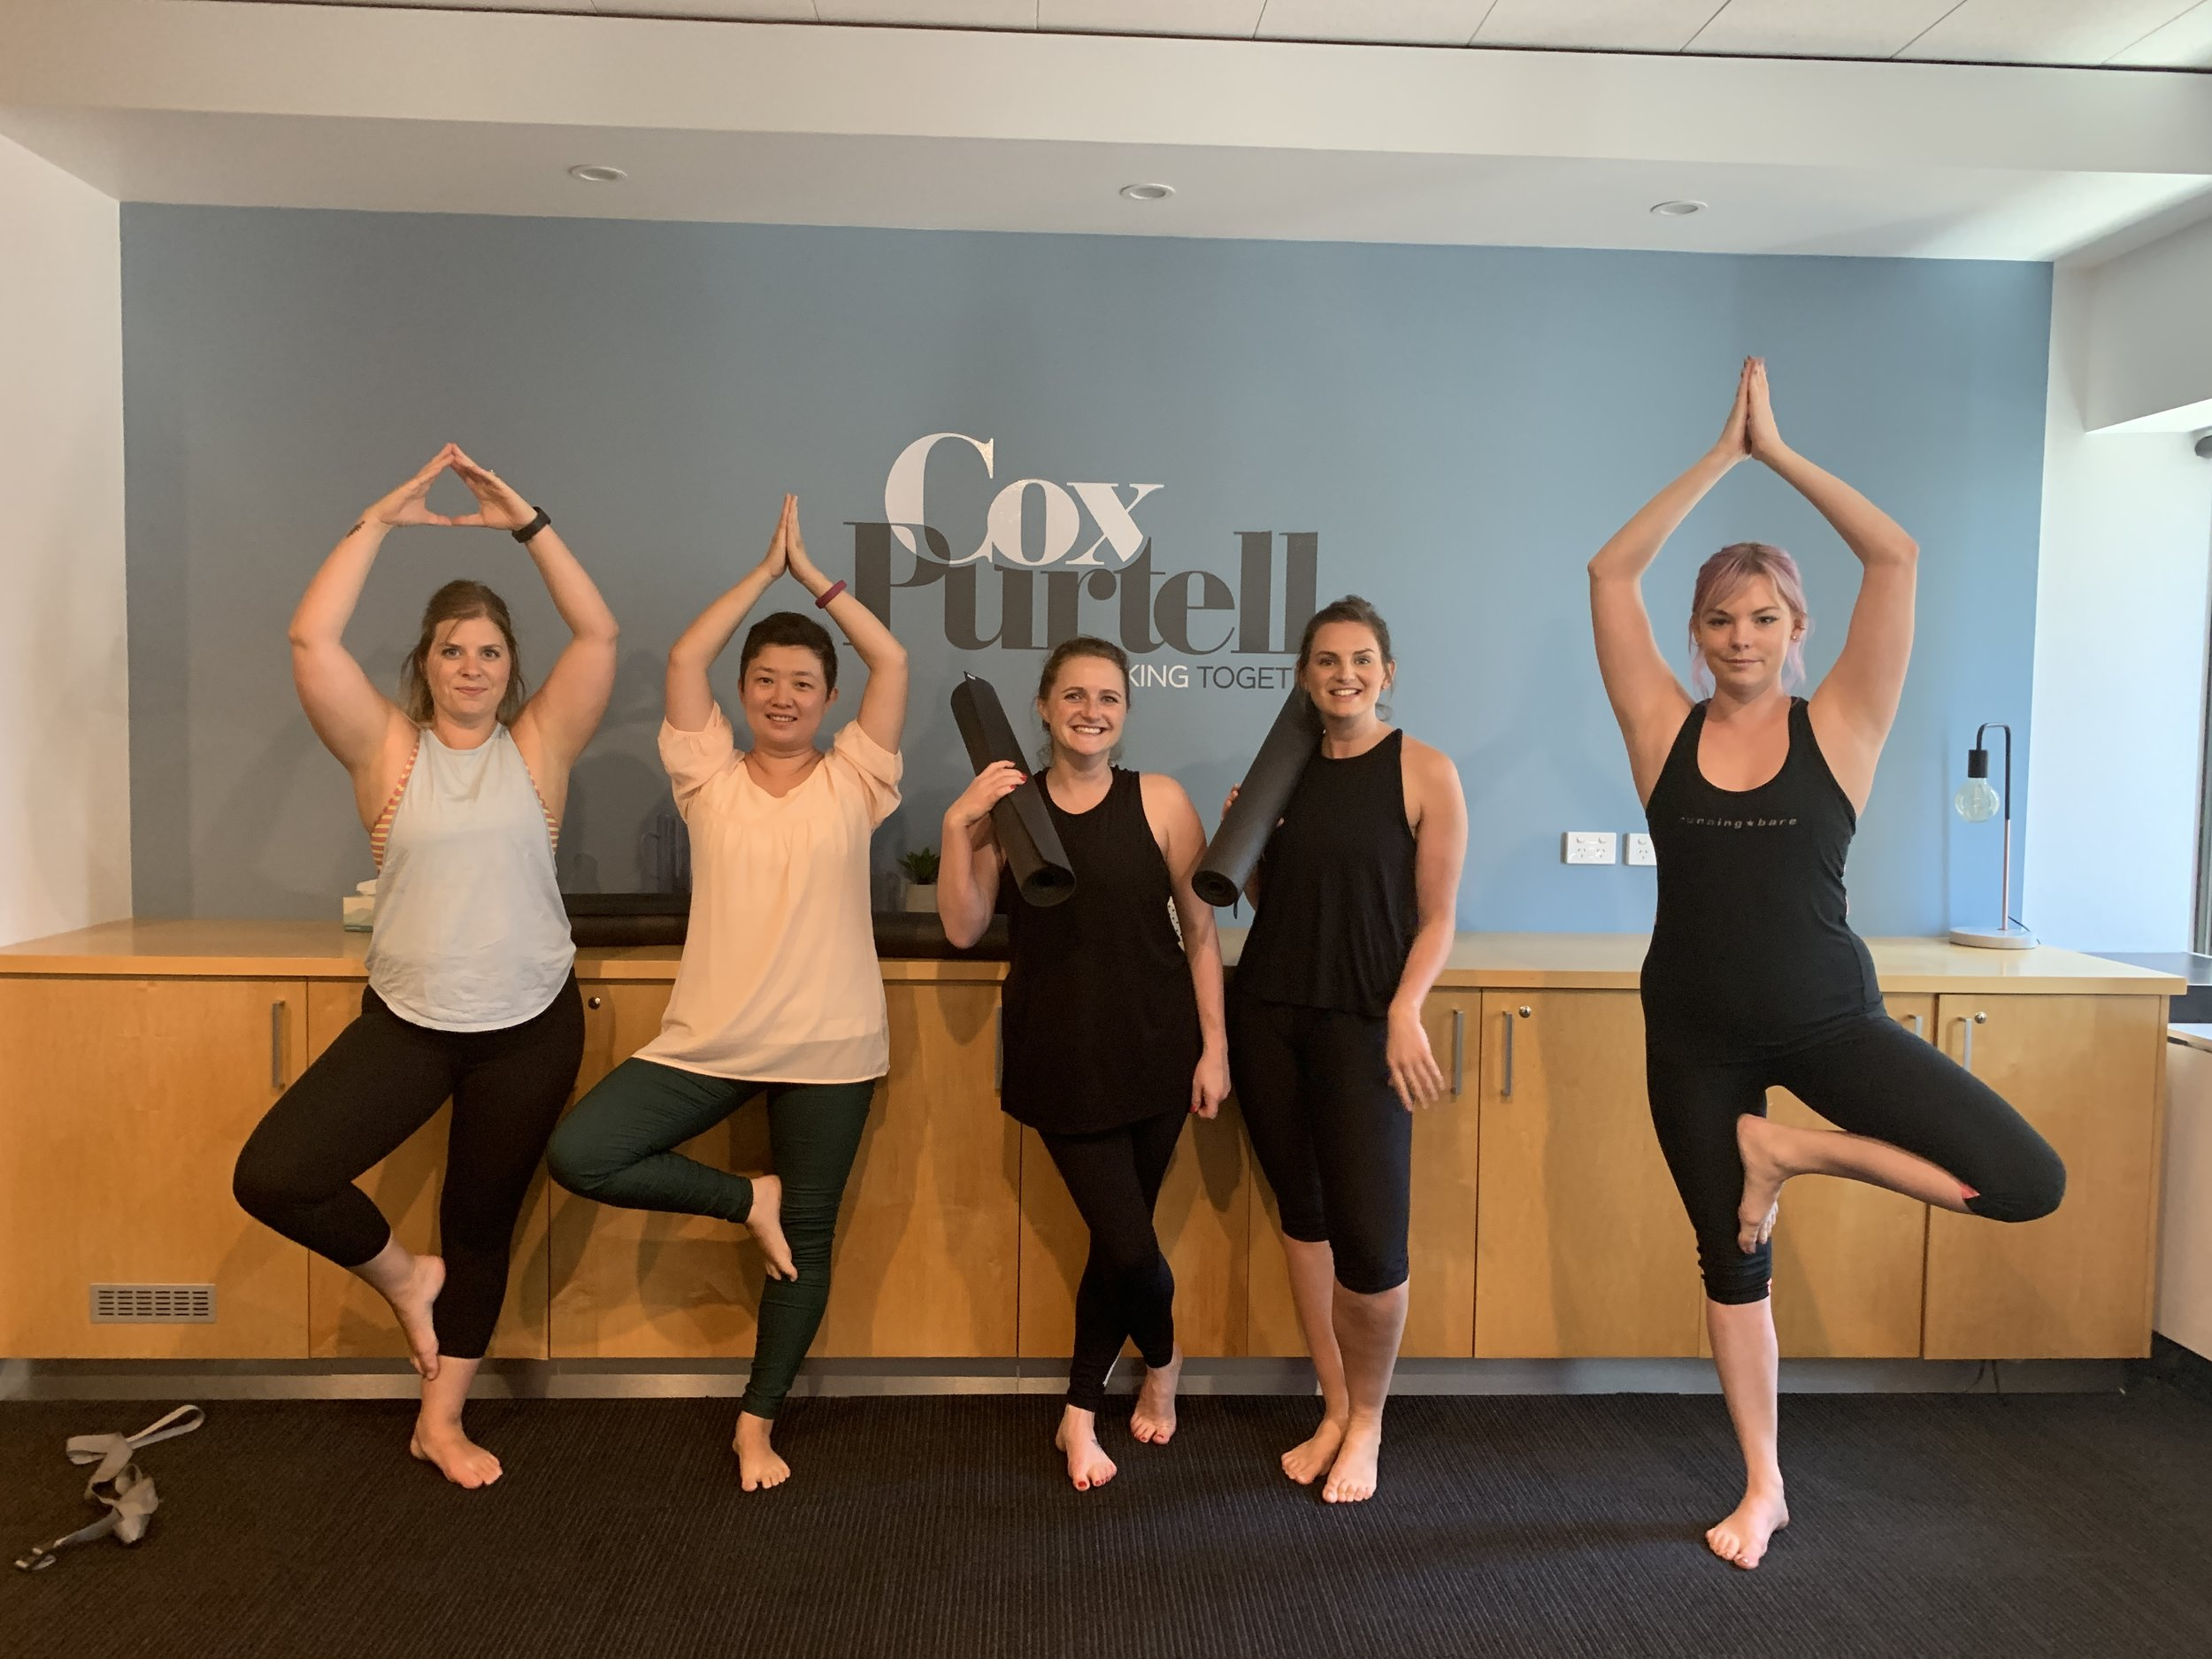 January 2019, Office Yoga with Cox Purtell